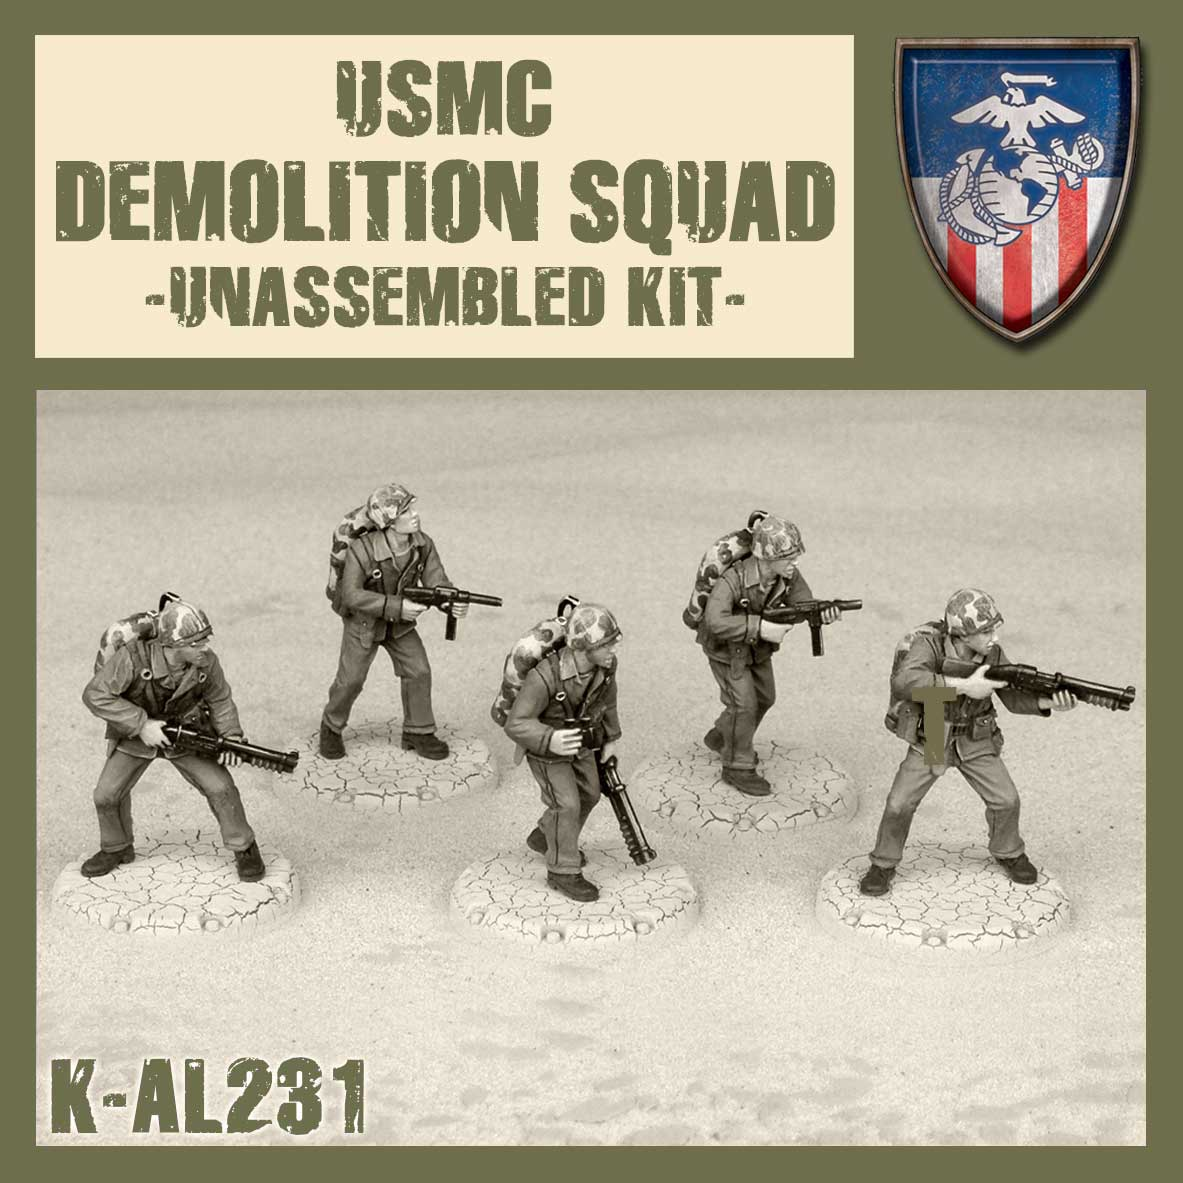 USMC Demolition Squad Kit